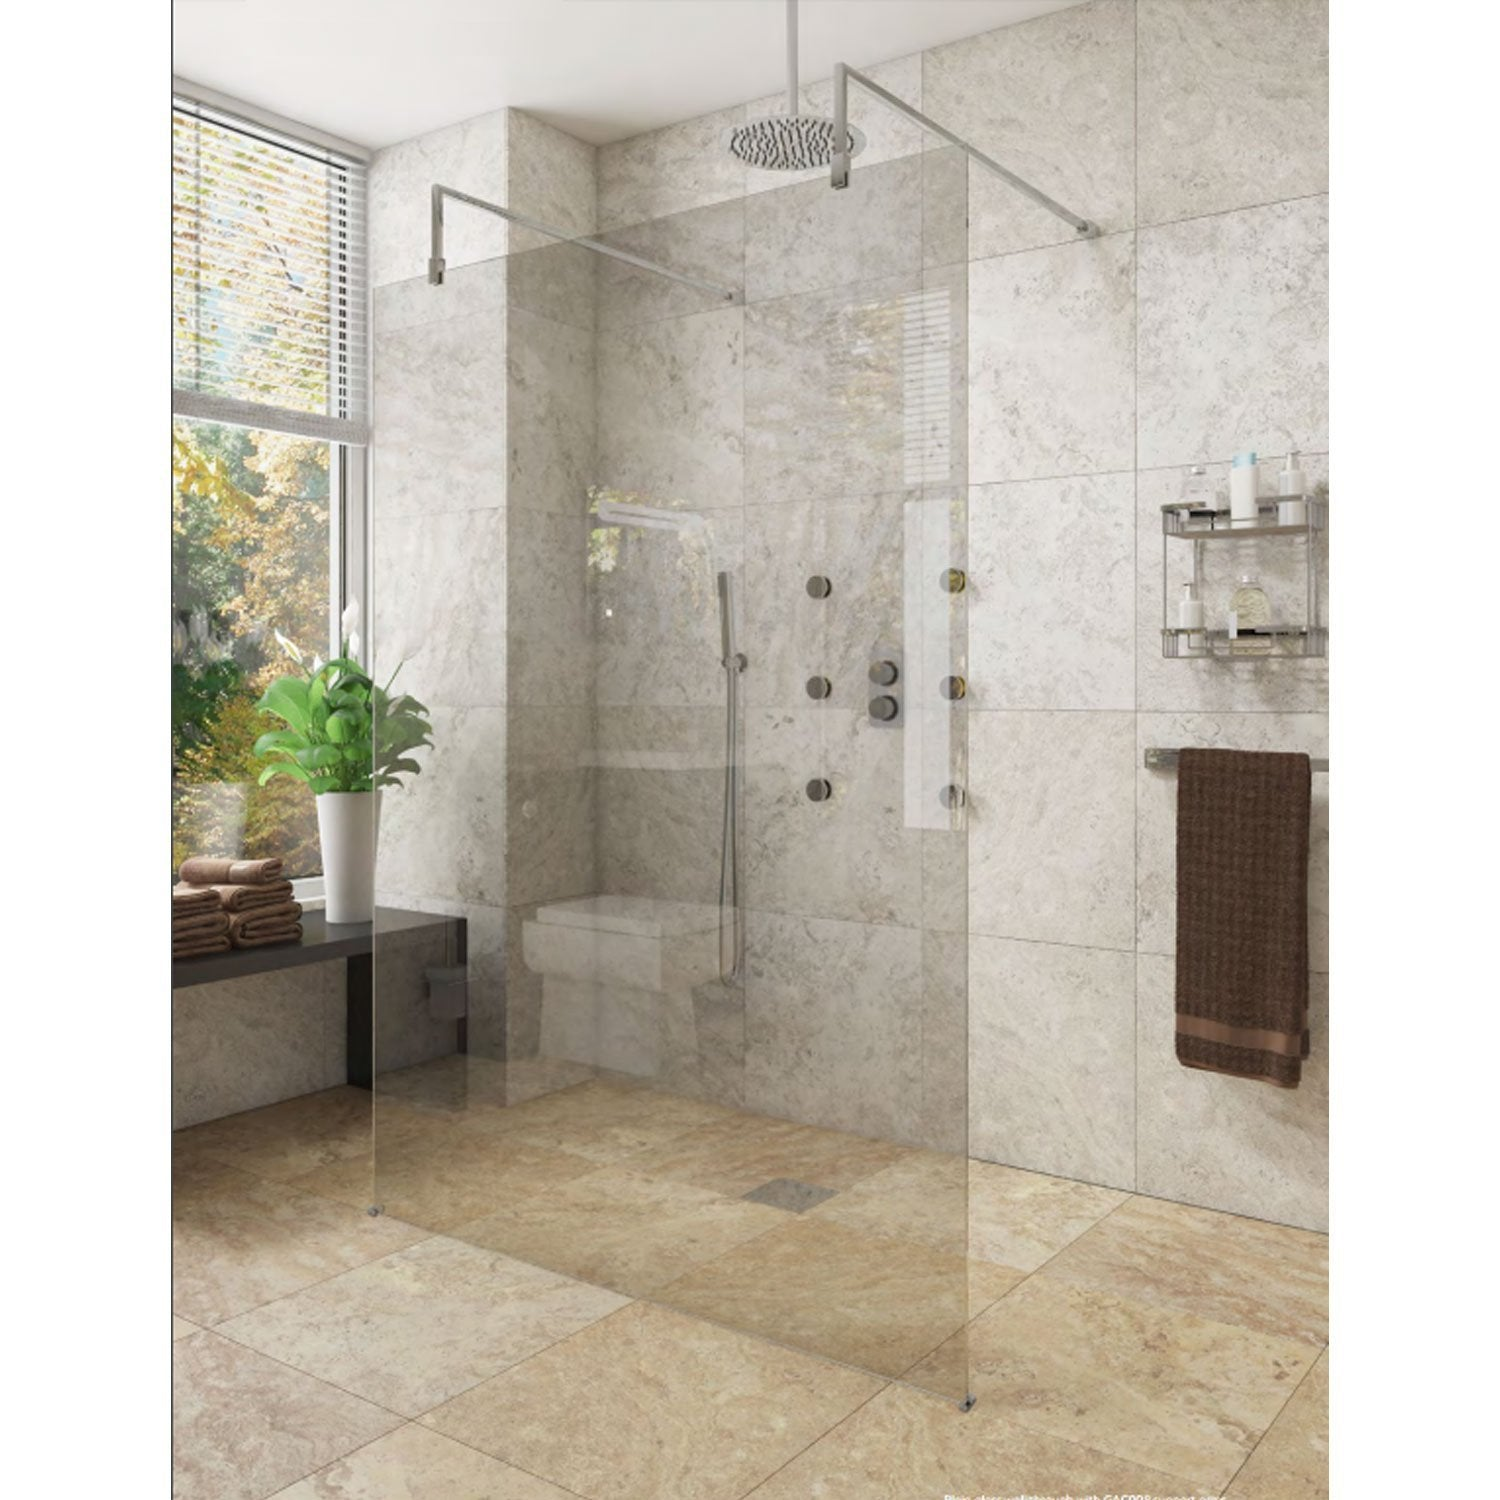 Cassellie Lana Wet Room Screen 2000mm High x 700mm Wide - 10mm Glass Only